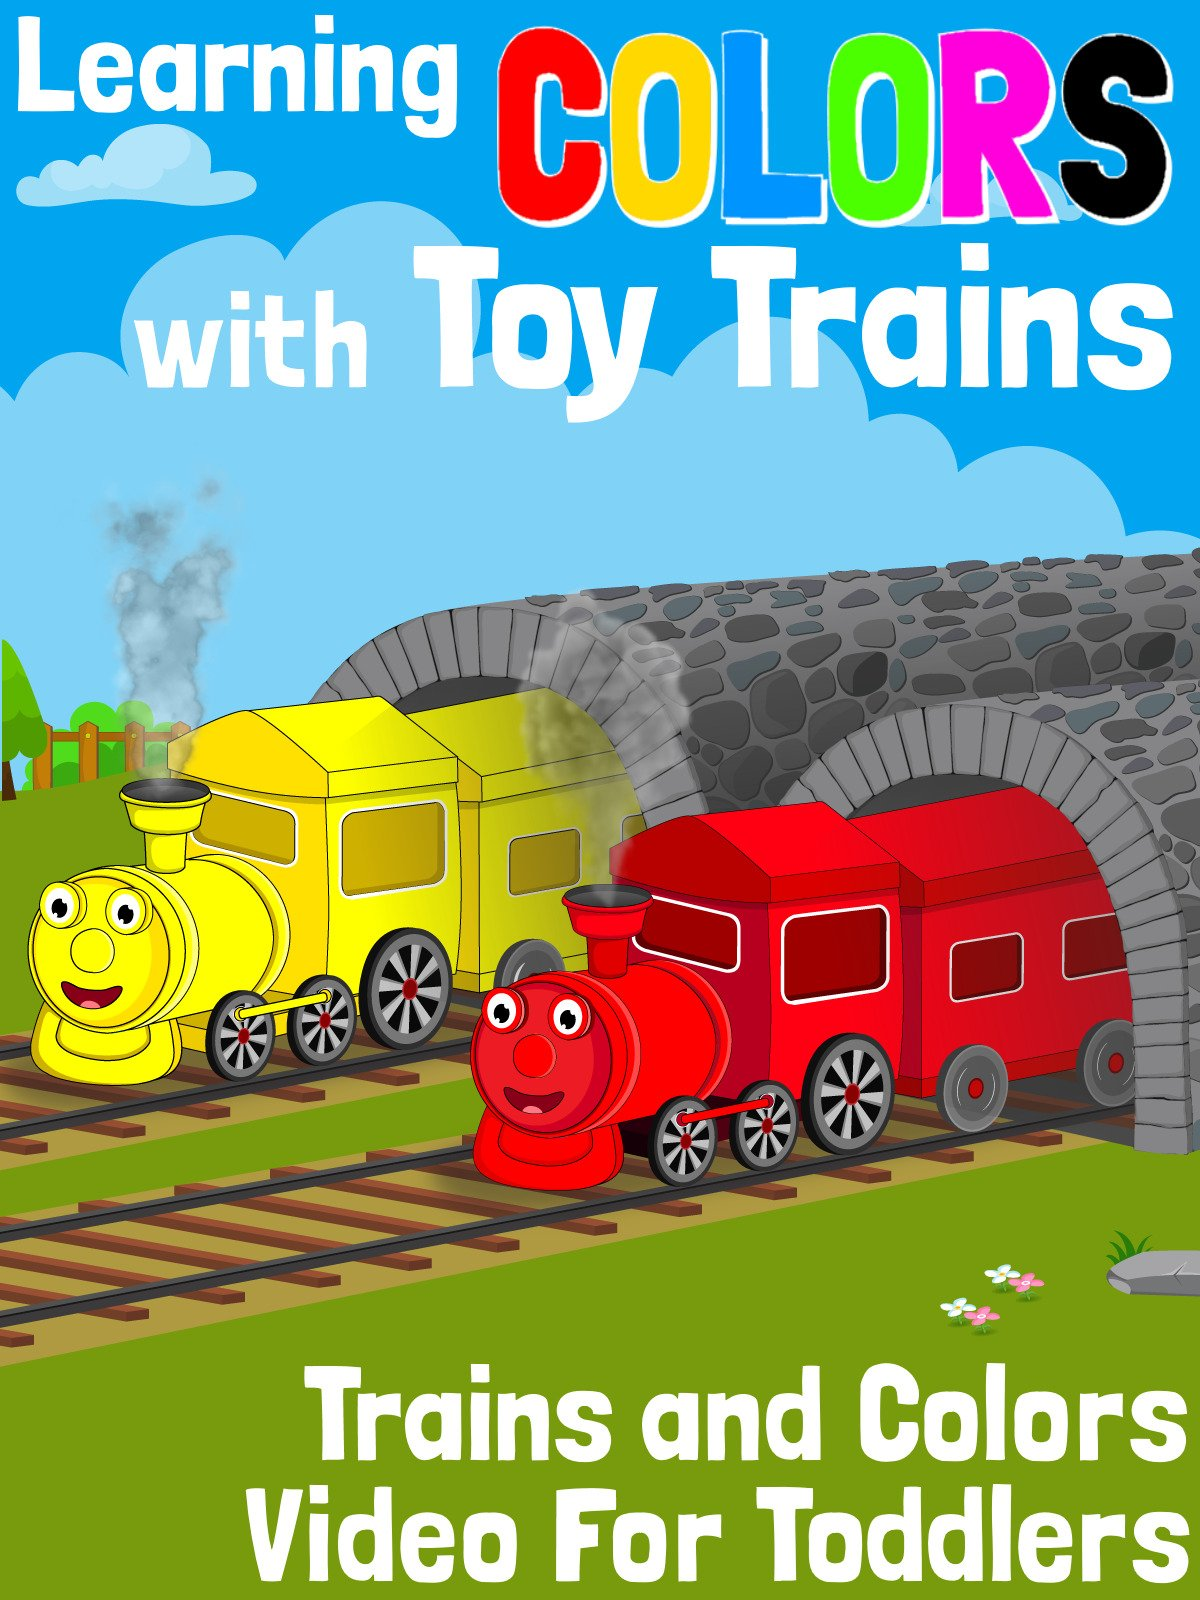 Learning Colors With Toy Trains